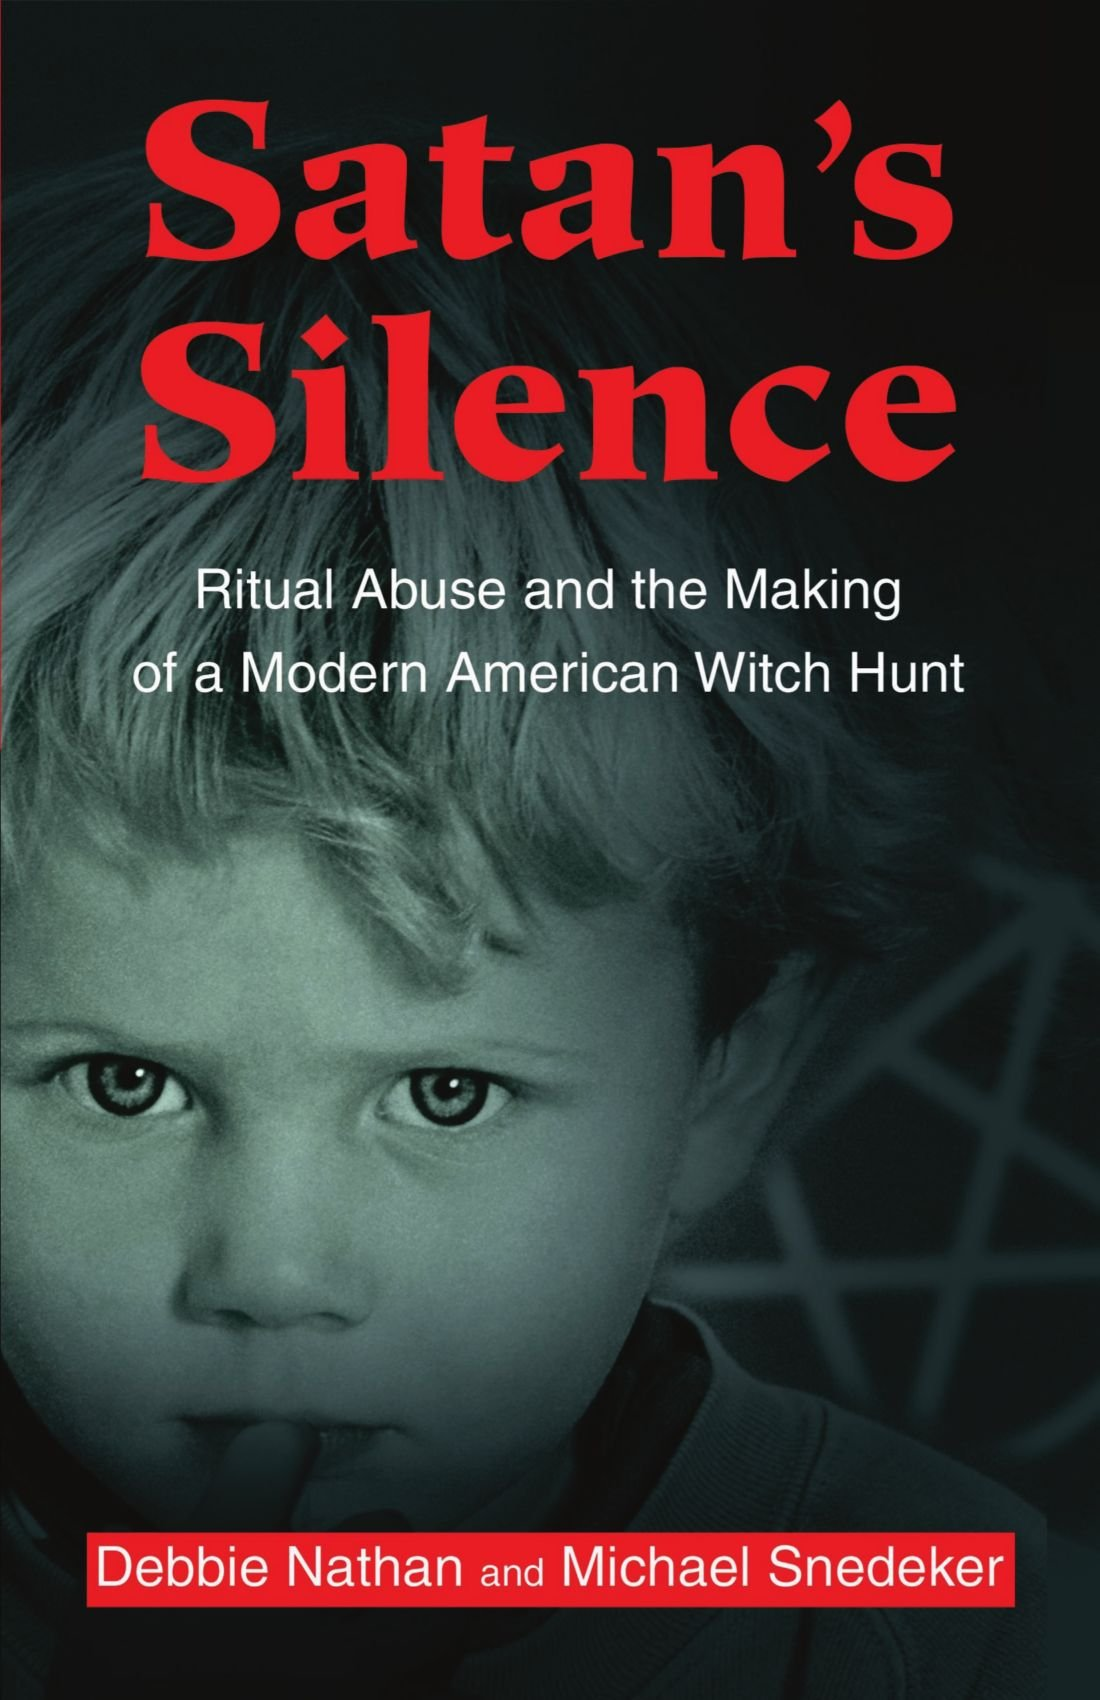 satan s silence ritual abuse and the making of a modern american satan s silence ritual abuse and the making of a modern american witch hunt debbie nathan michael snedeker 9780595189557 com books